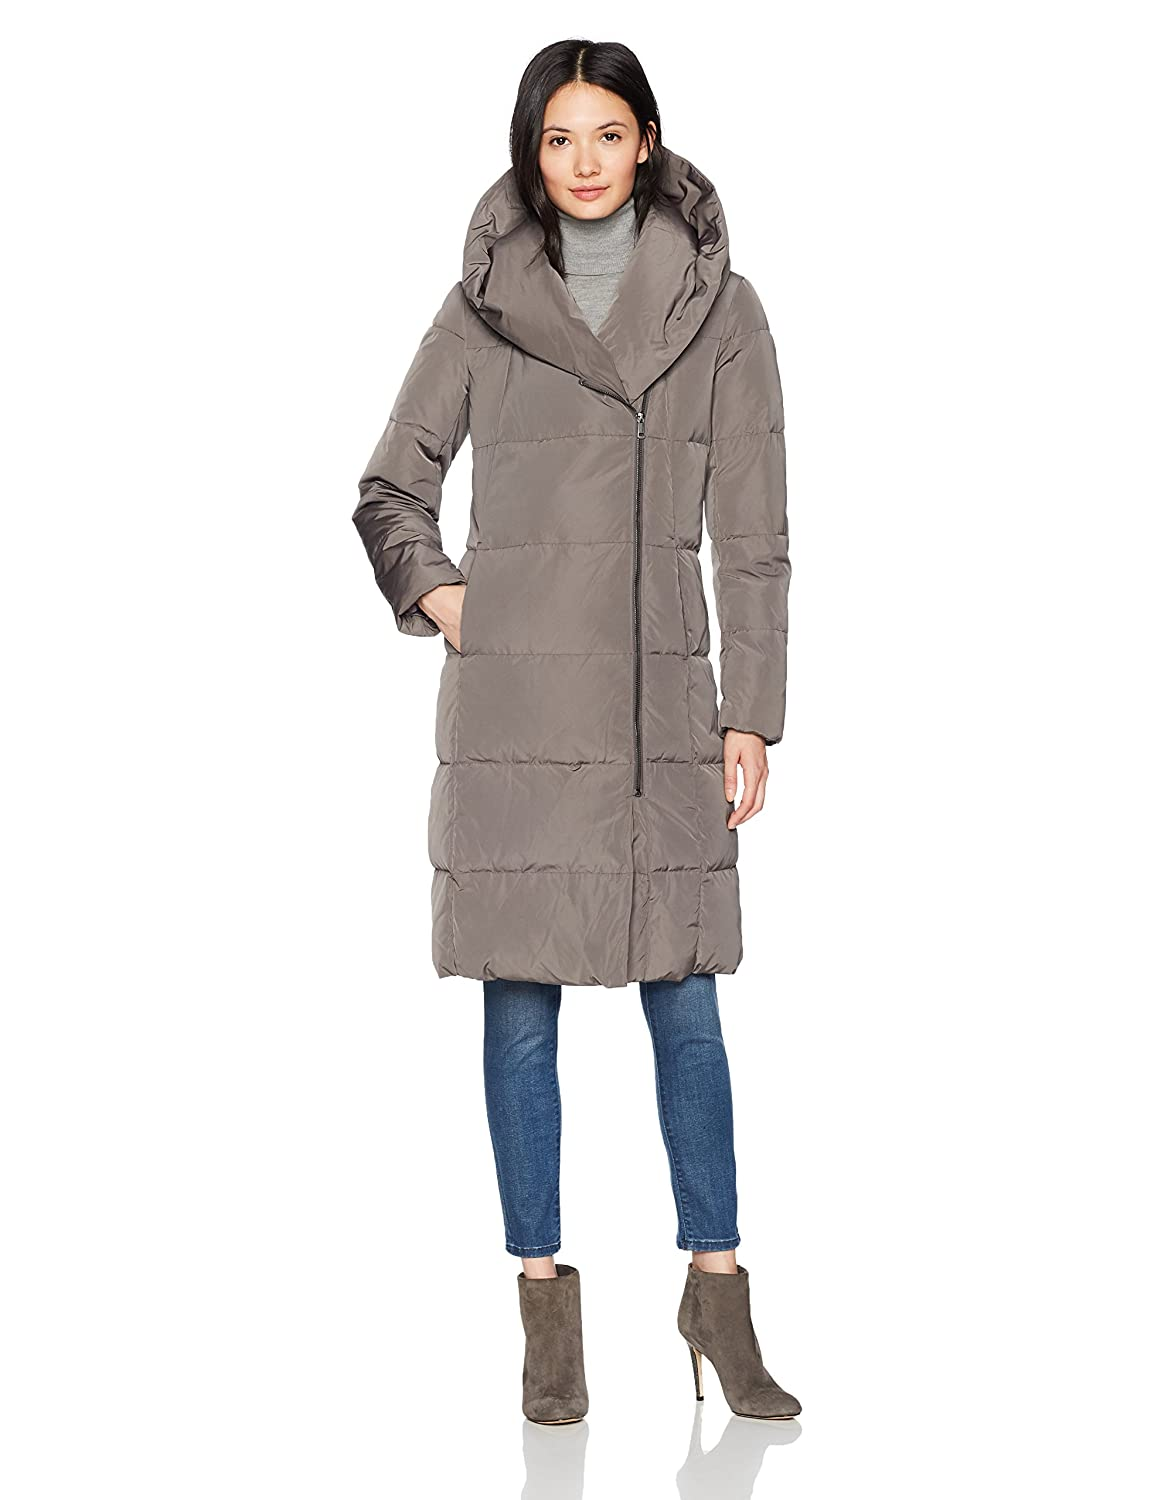 Cole Haan Womens Taffeta Down Double Breasted Zip Front Coat Down Outerwear Coat